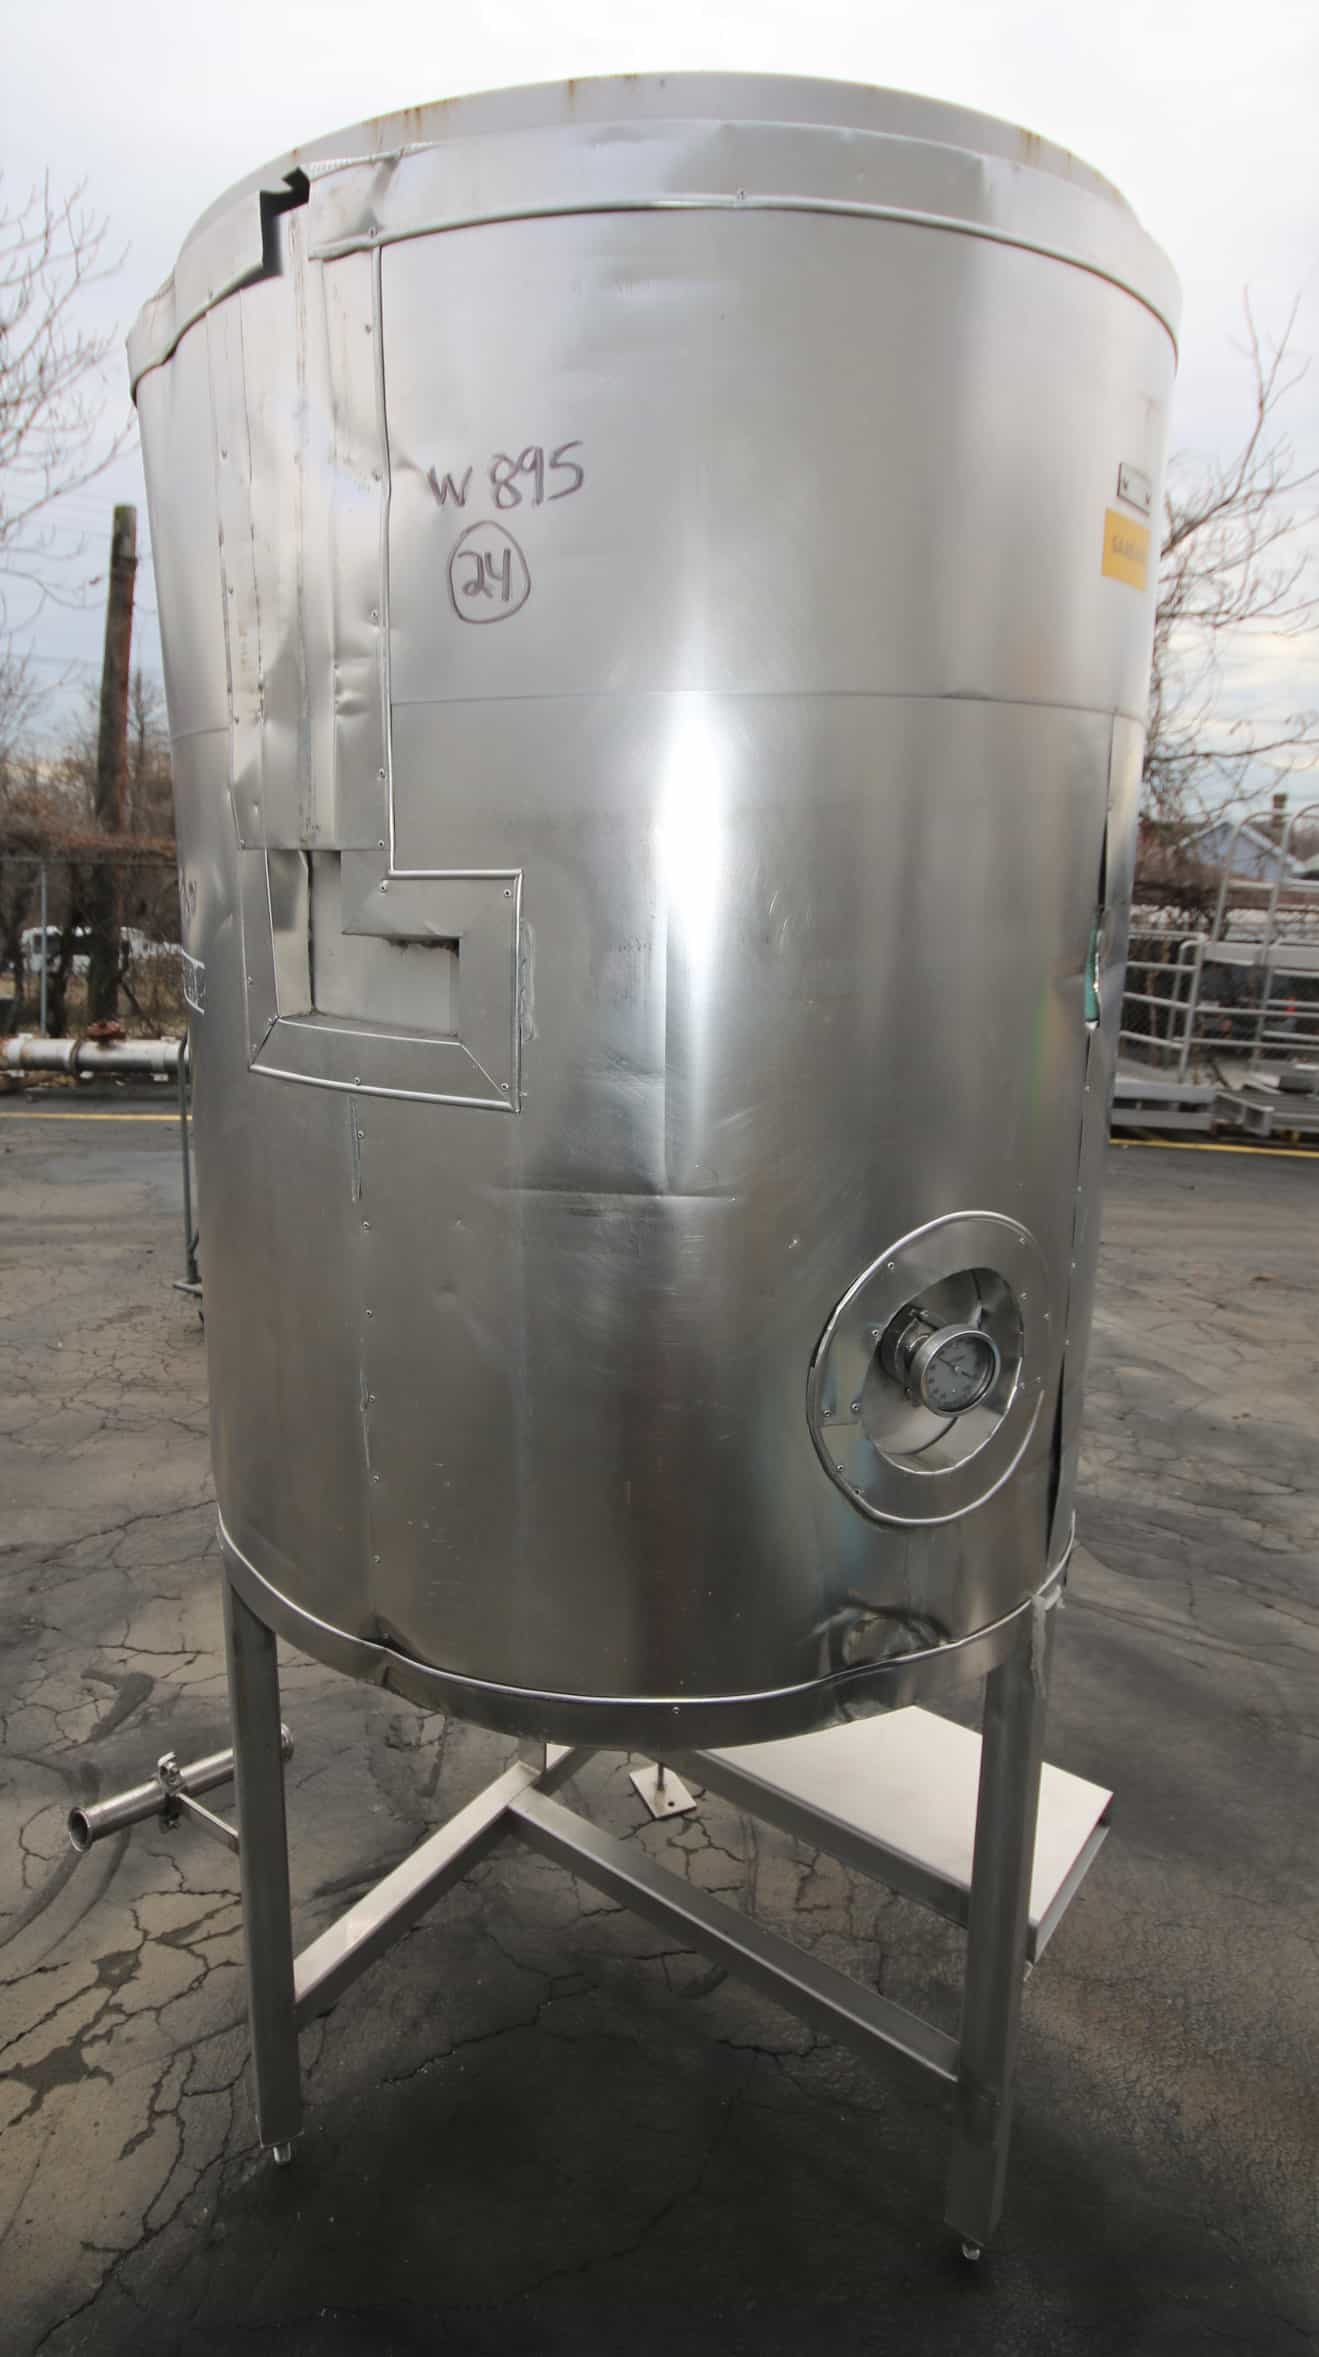 "Aprox. 200 Gal. Cone Bottom S/S Tank with Hinged Lid, with 2"" CT Bottom Connector, Insulation & S/S Legs, (W895)"